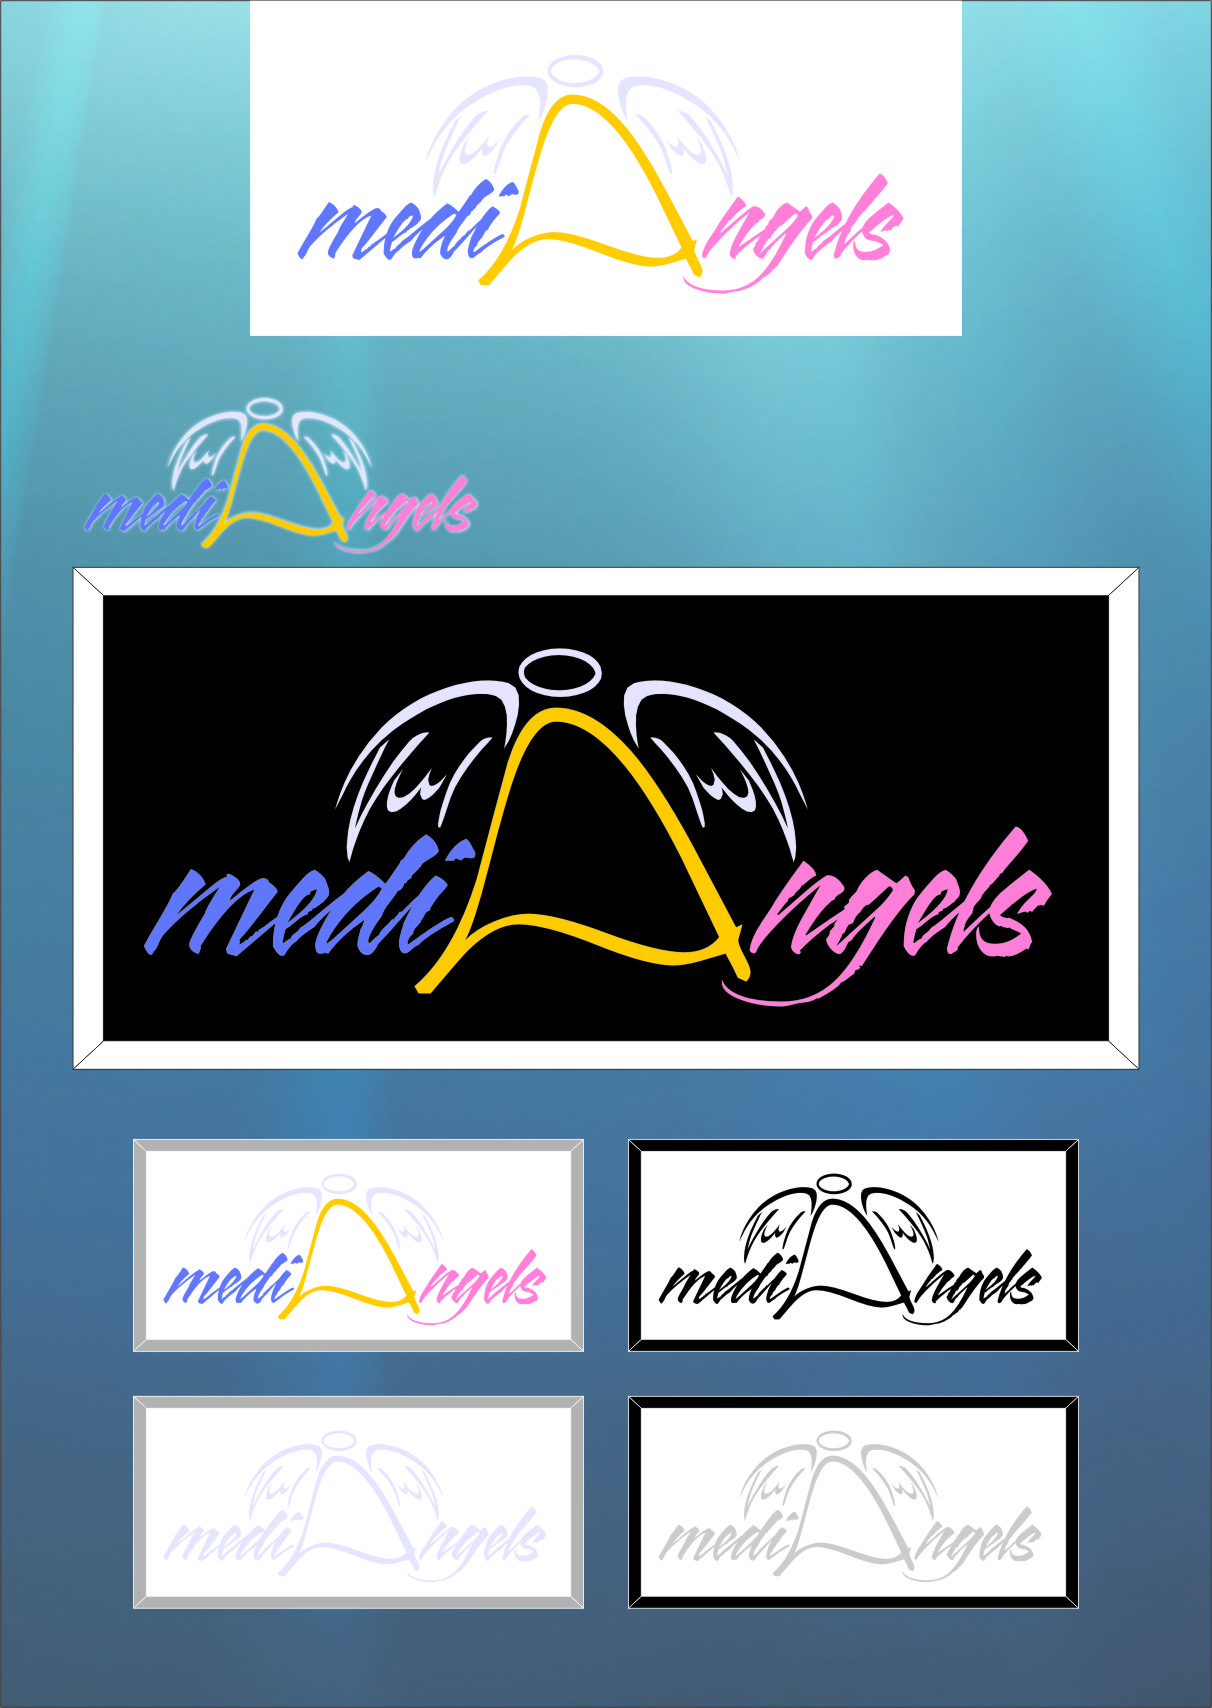 Logo Design by Ngepet_art - Entry No. 7 in the Logo Design Contest New Logo Design for Media Angels.